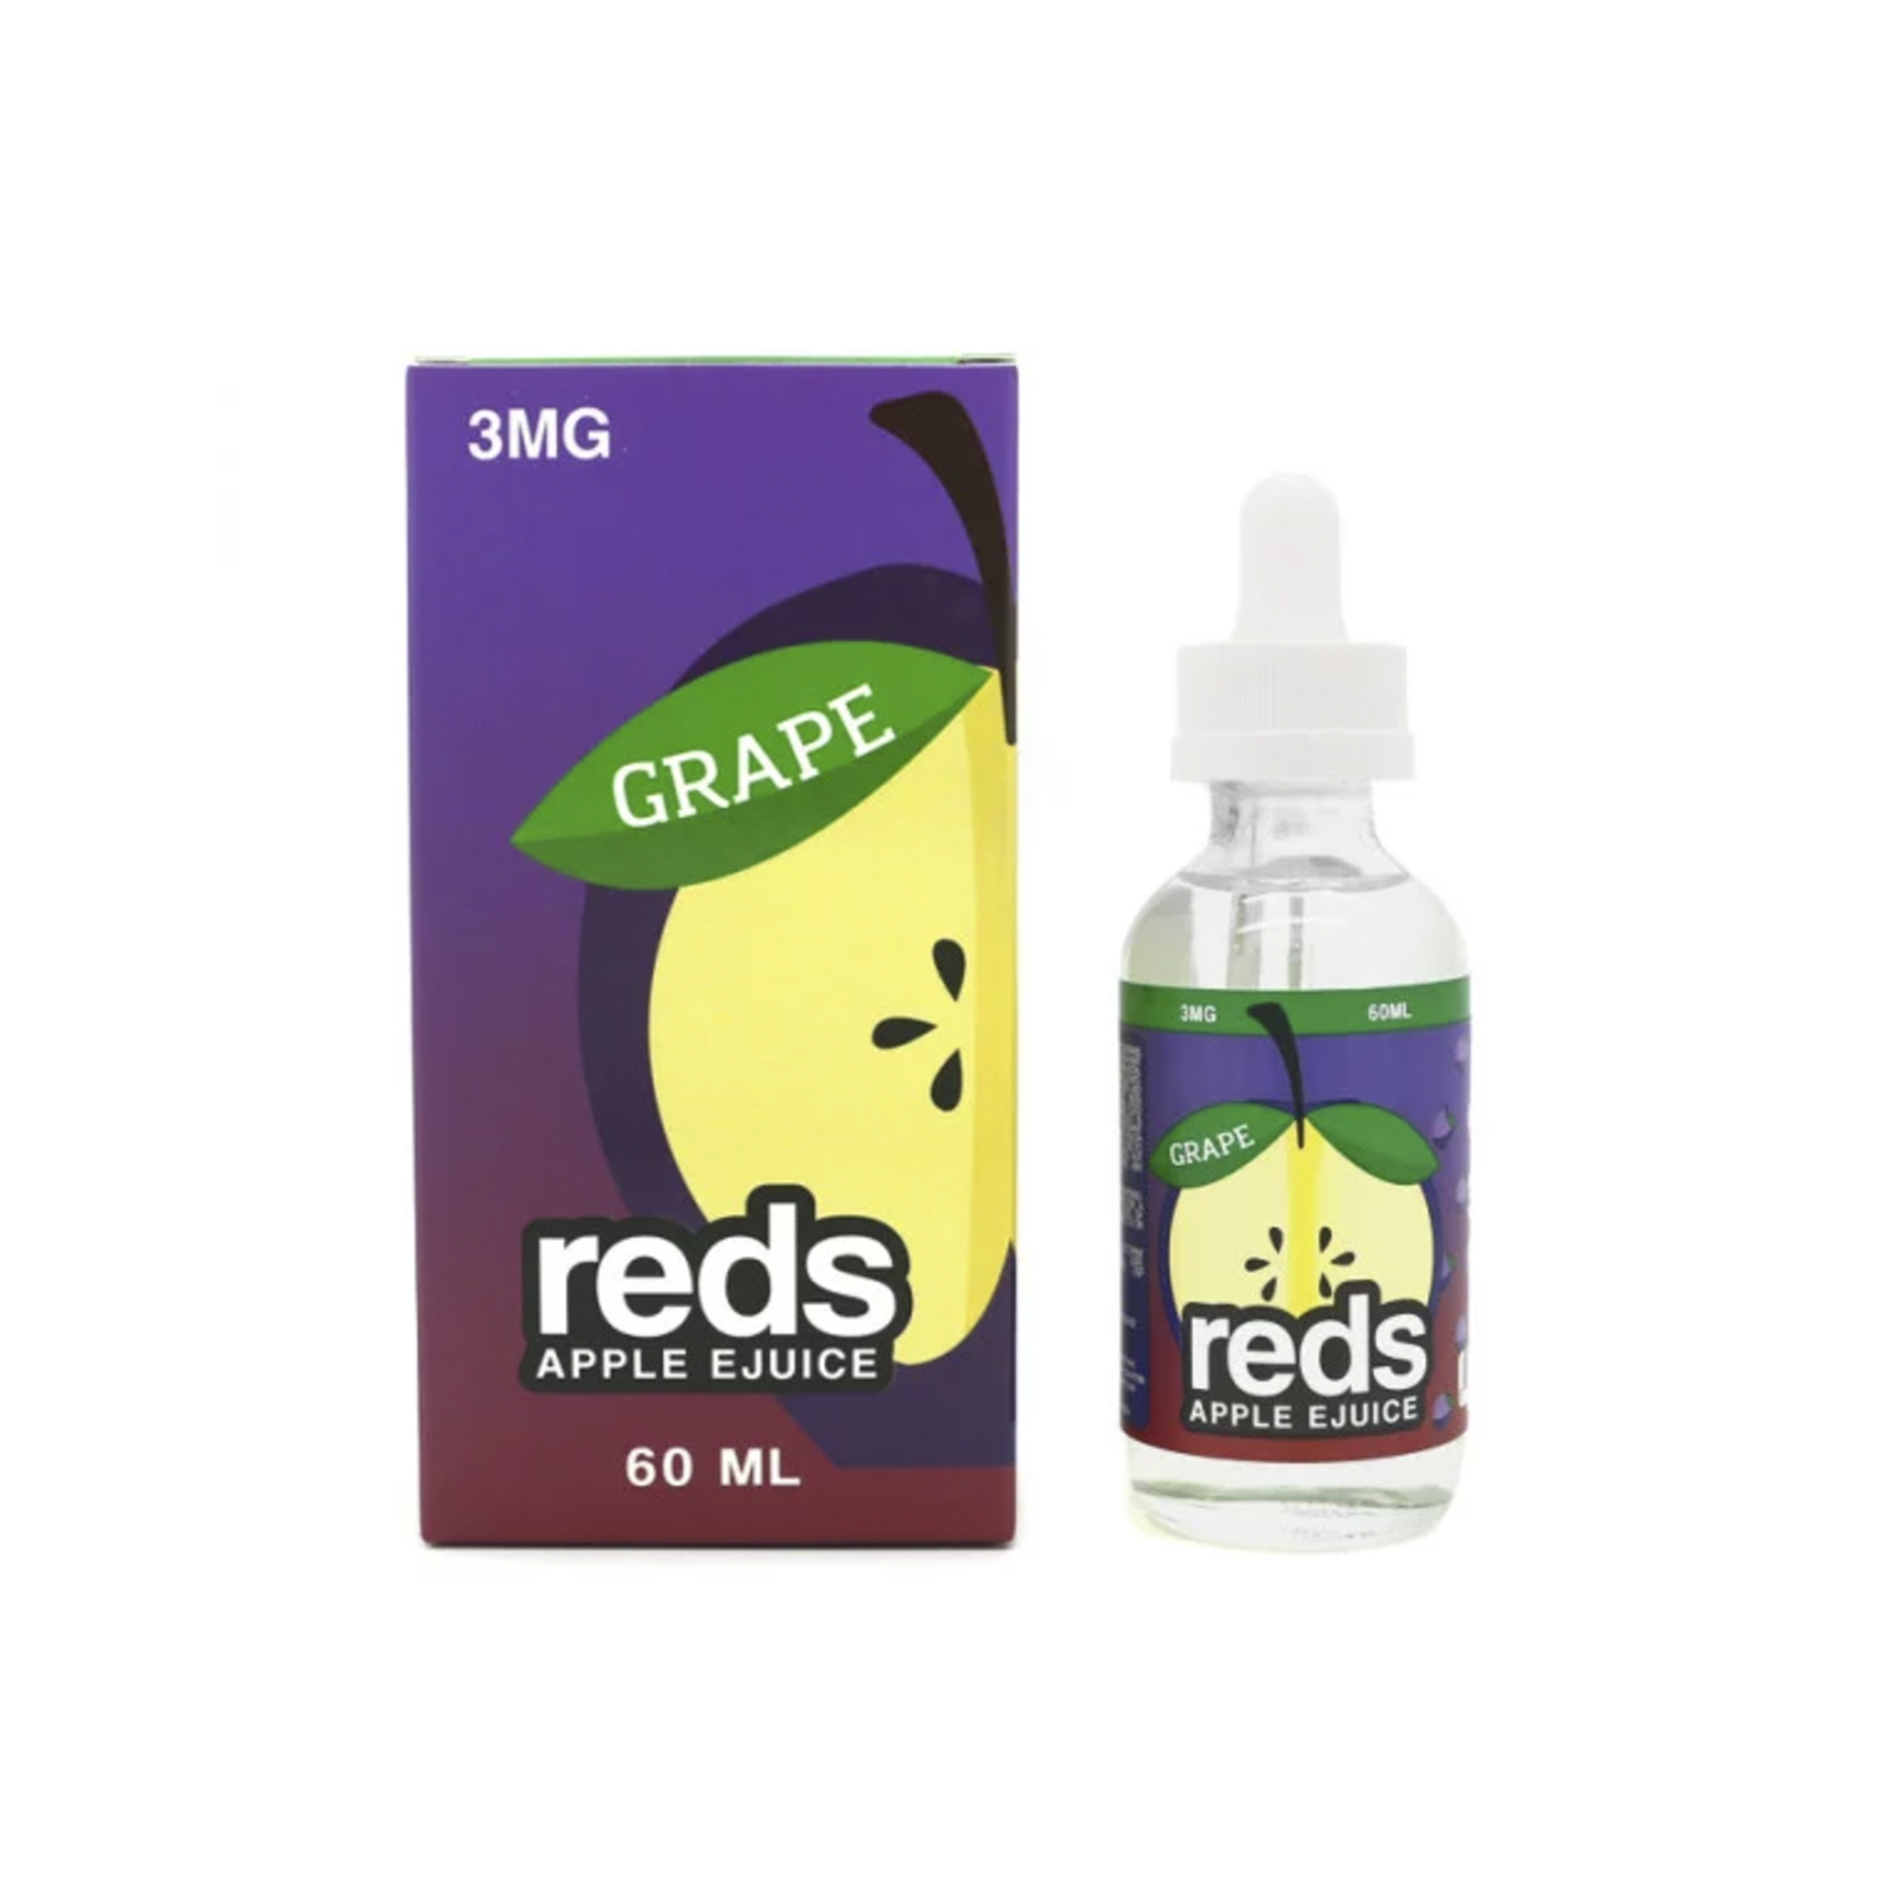 Reds Grape Ejuice Photo